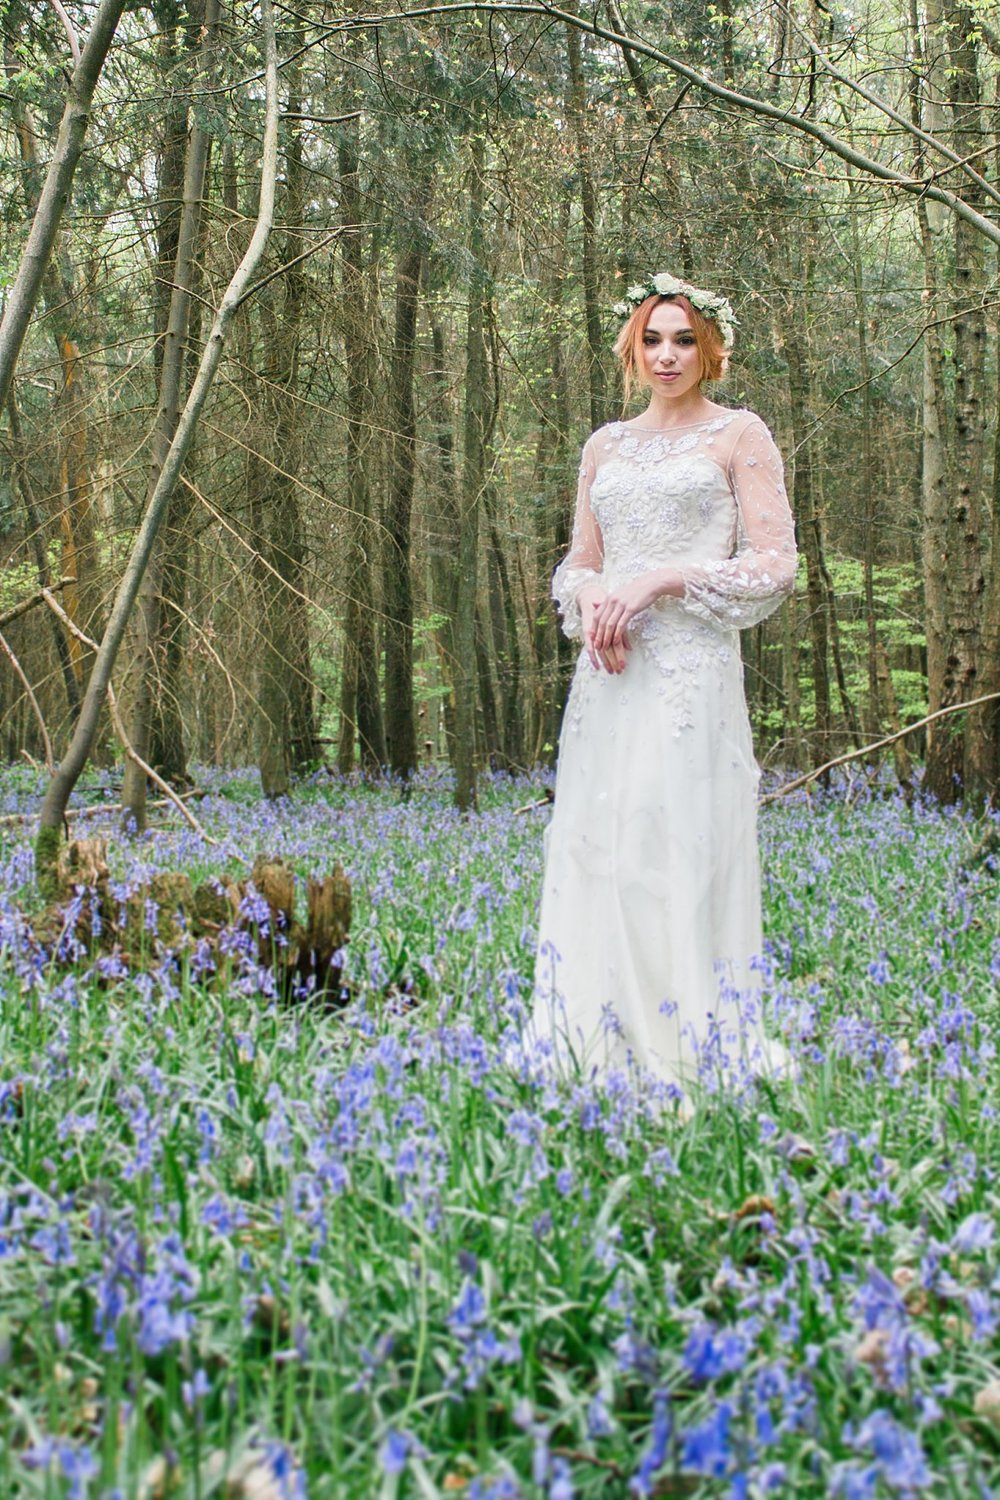 Vintage Amy Wedding Styling-Whimsical Vintage Woodland Wedding Kent-Jenny Packham